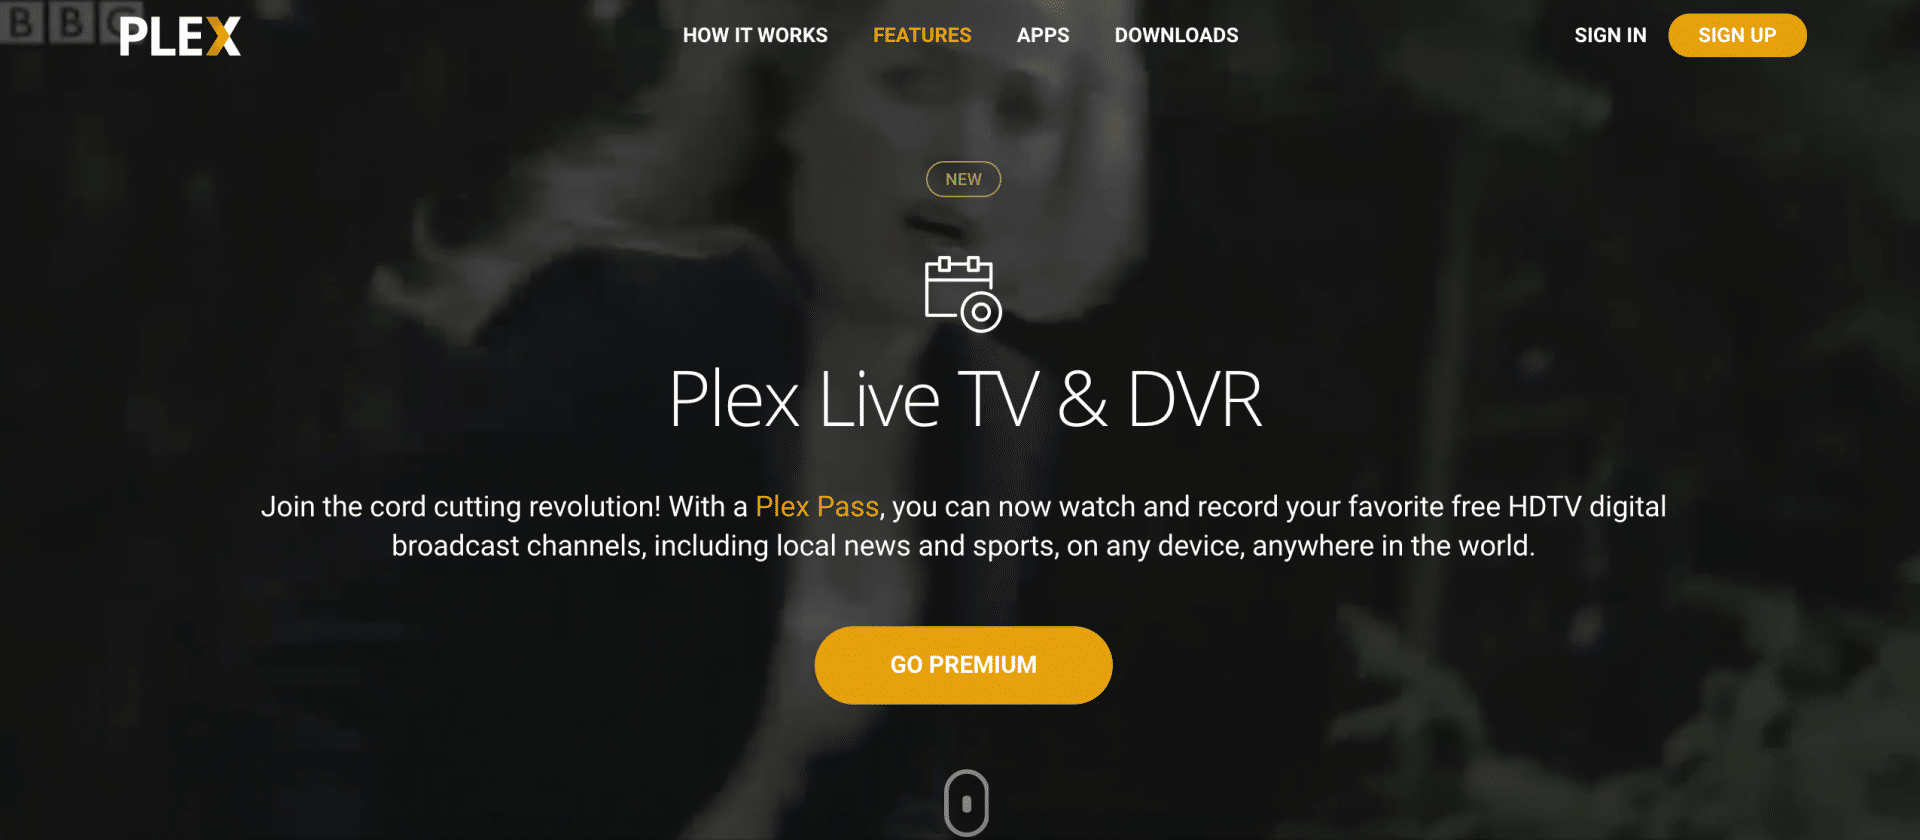 How to Watch Live TV on Plex - Your Complete Guide